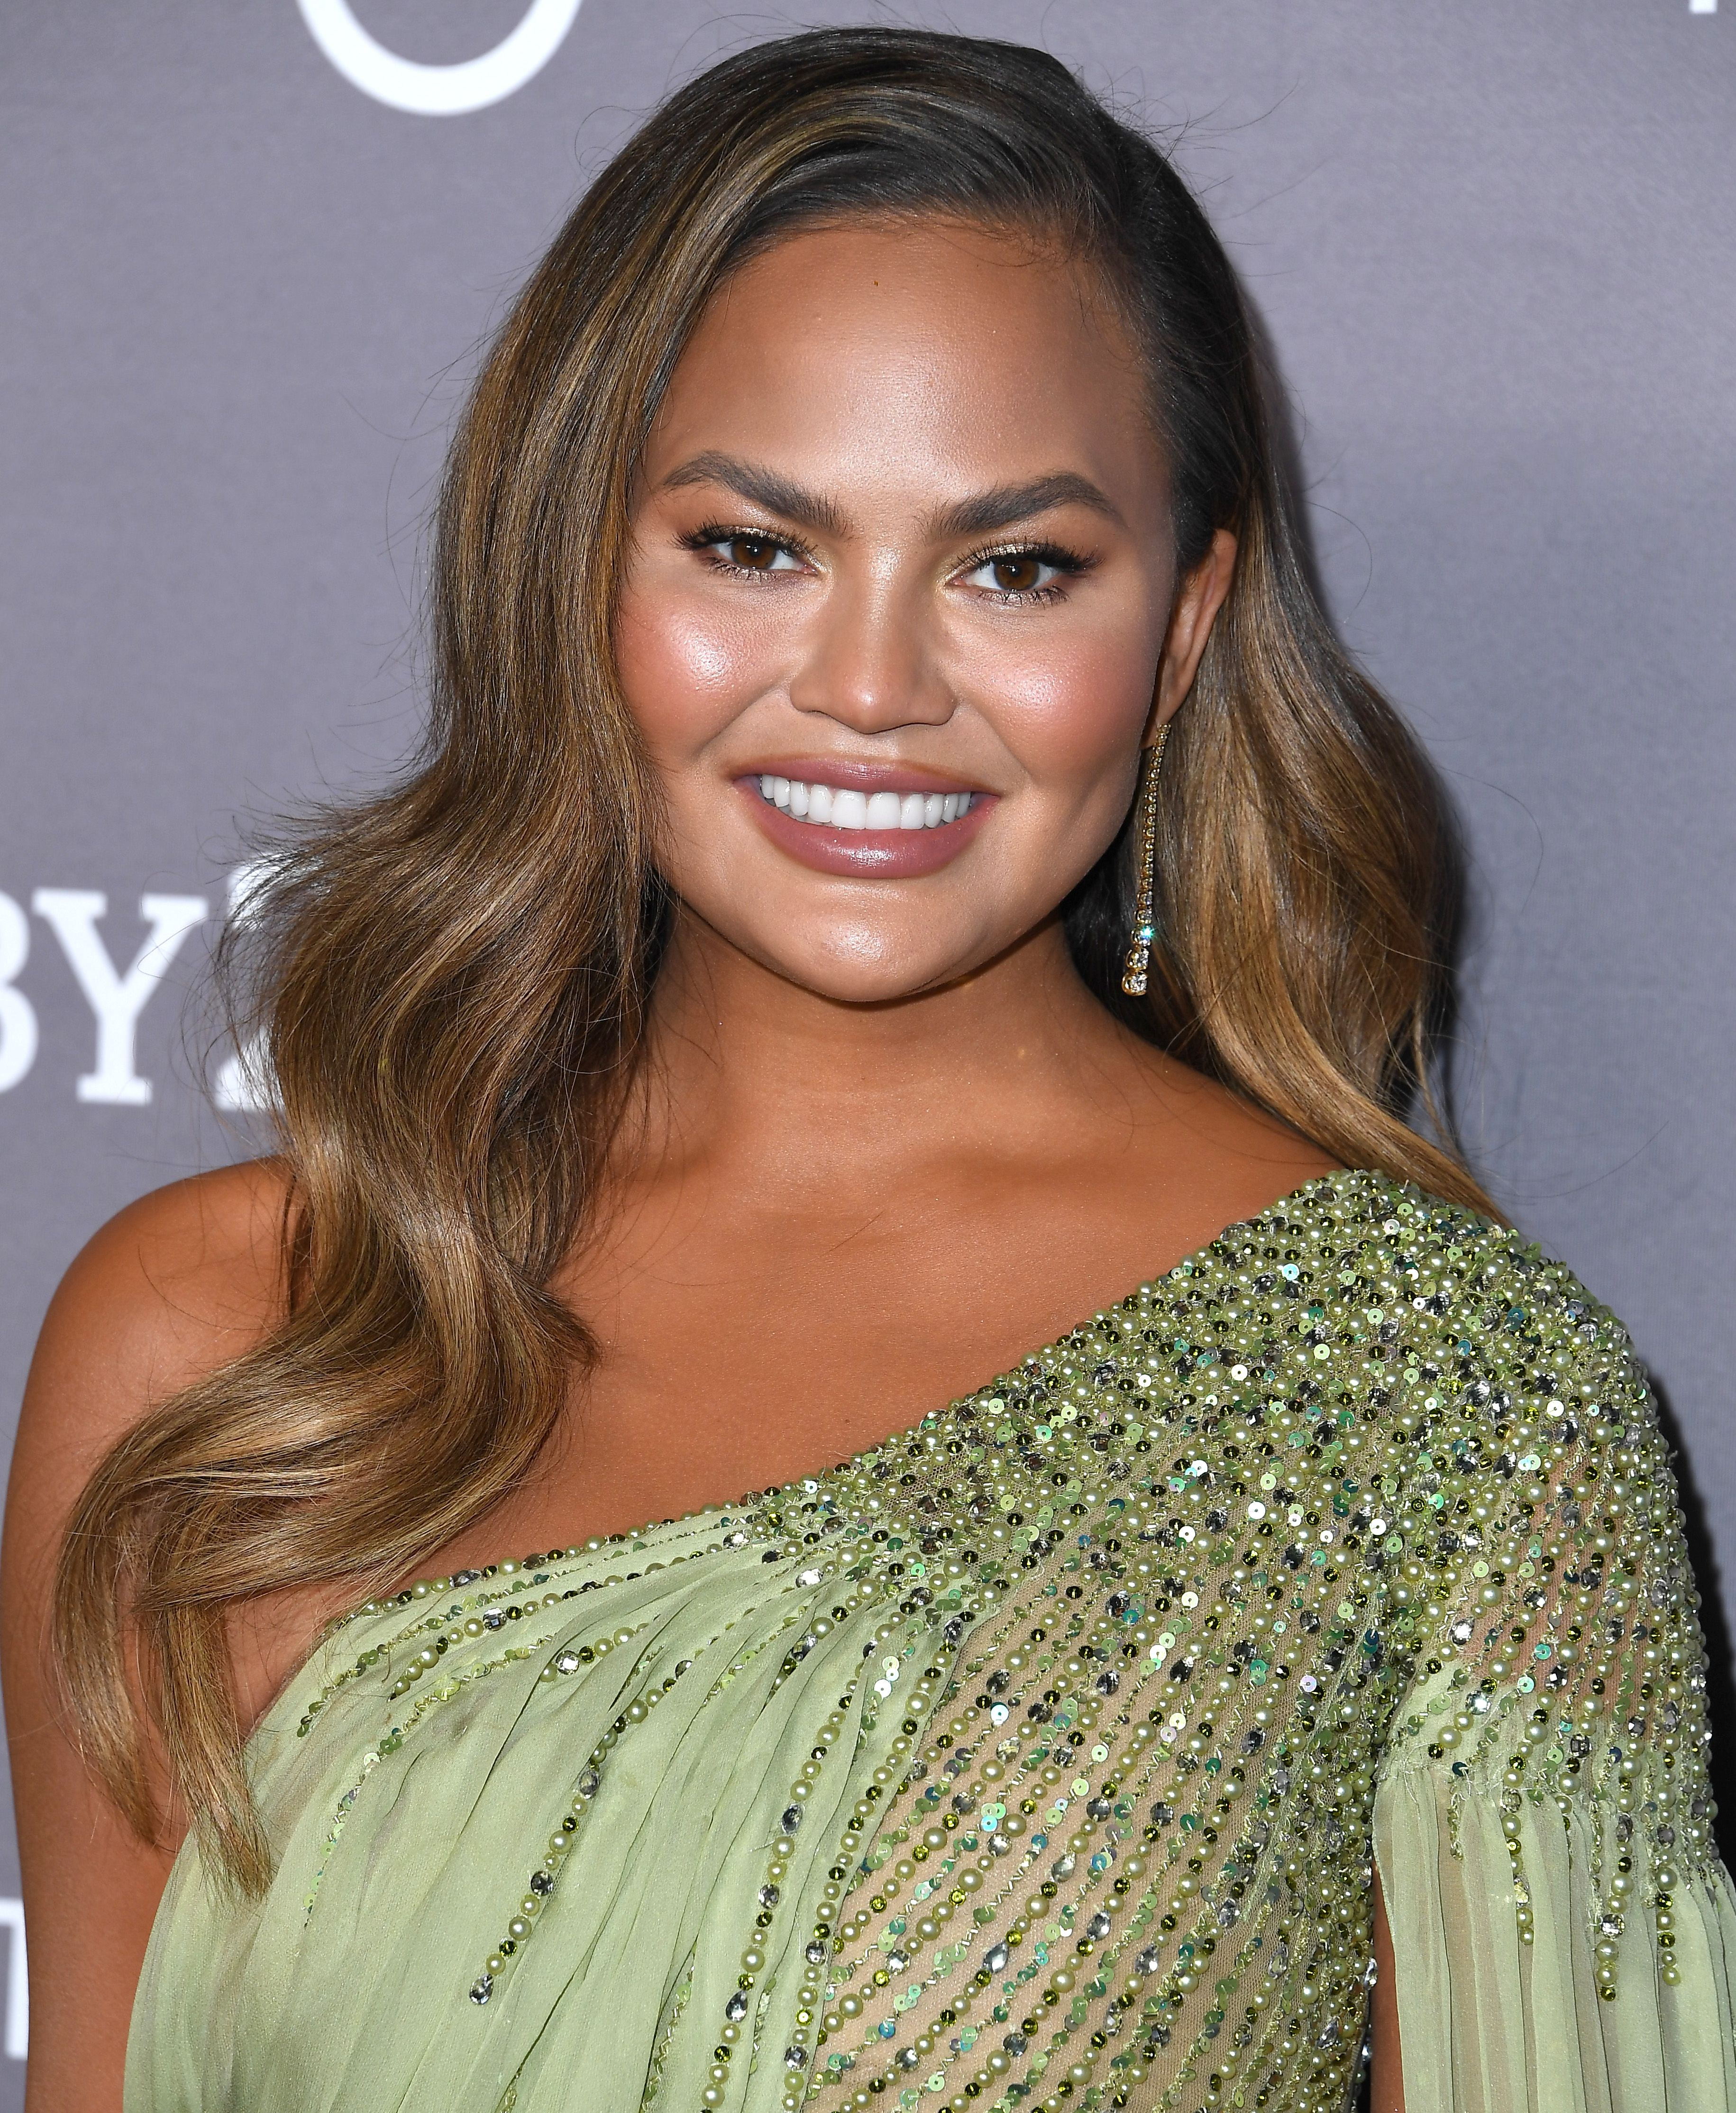 Chrissy Teigen's transformed her hair just in time for Christmas